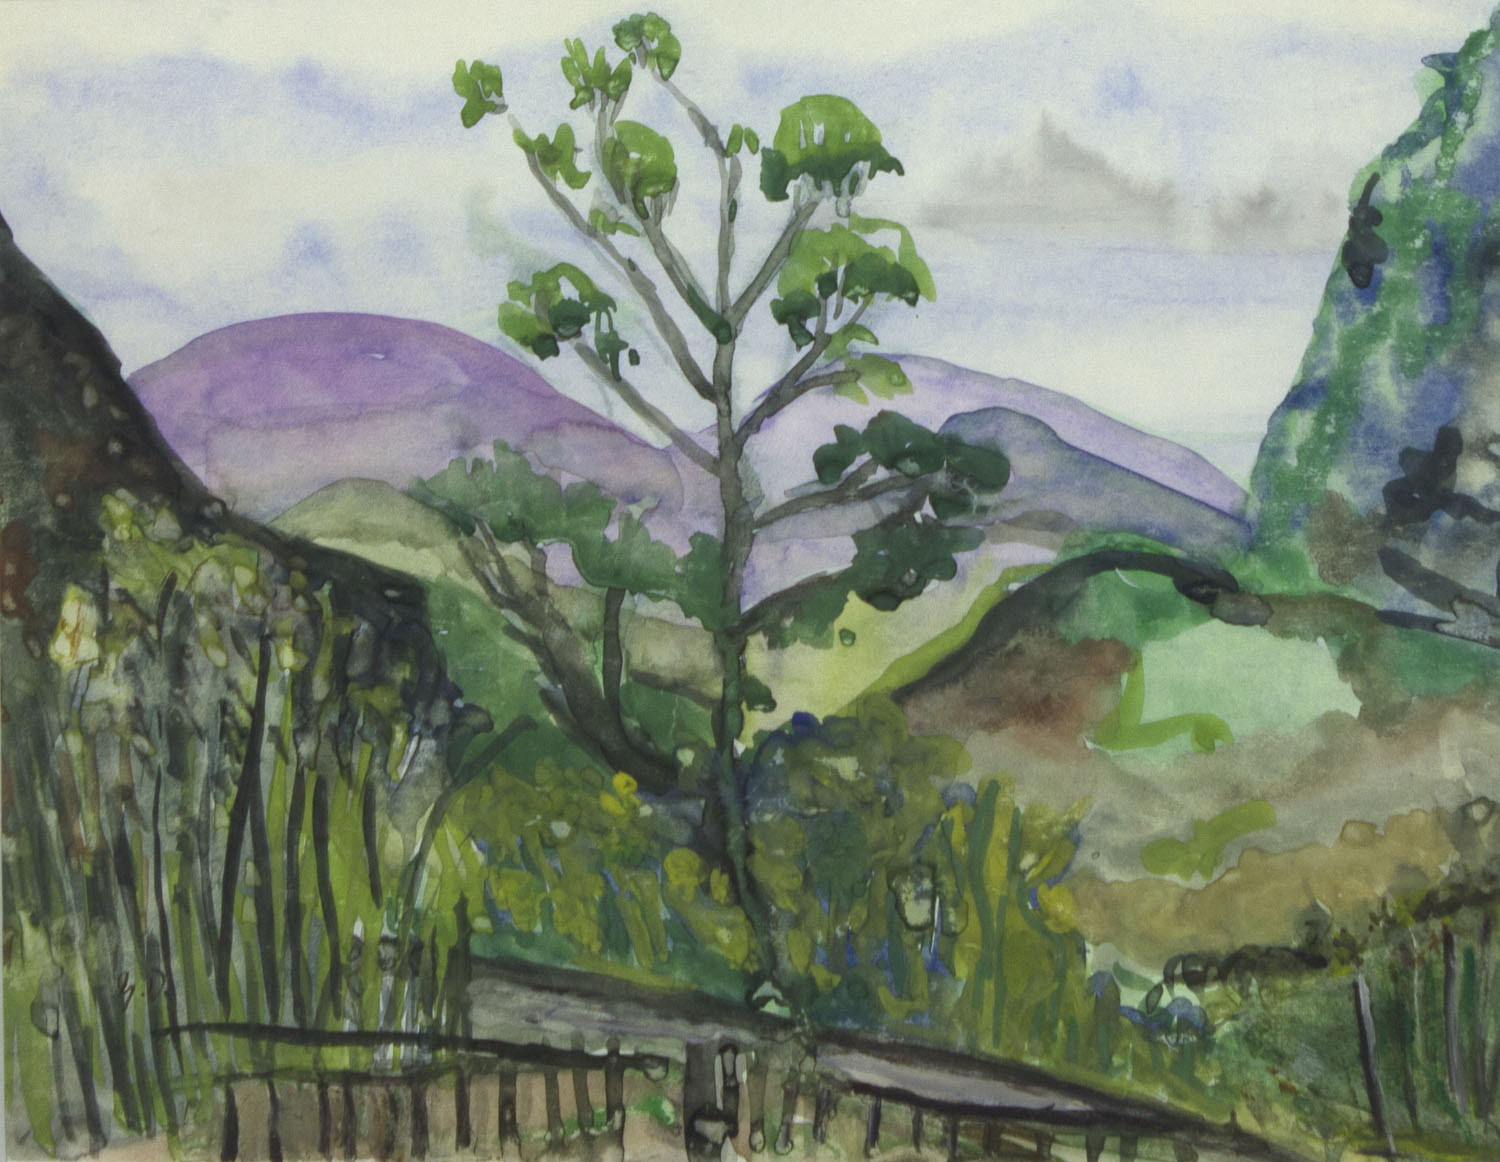 Gerad Dillon 'Tree In The Landscape' watercolour 22x29cm.jpg